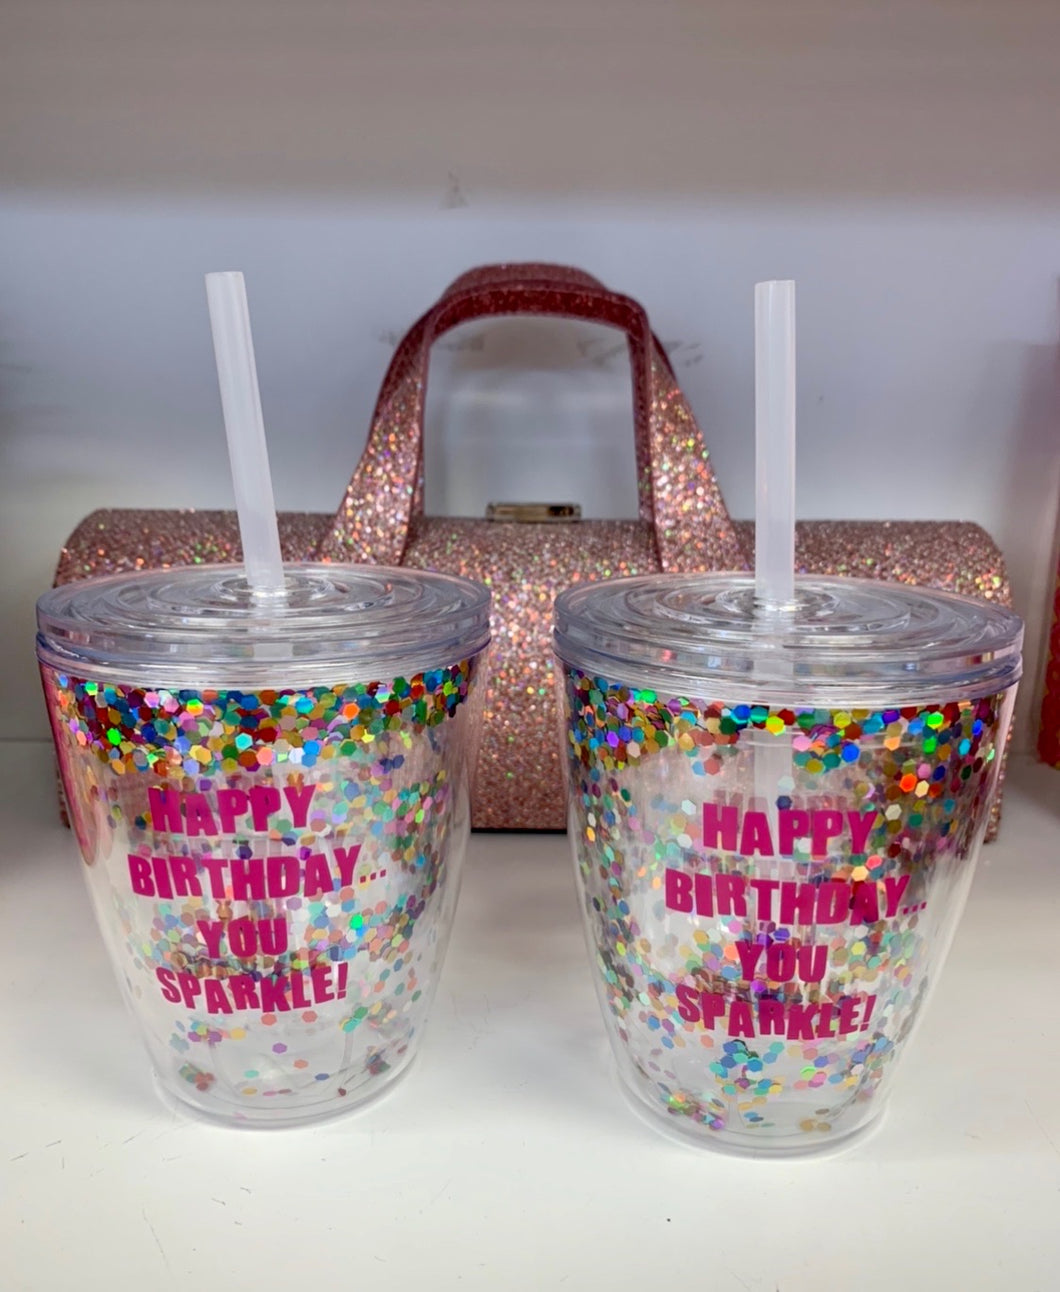 Happy Birthday You Sparkle Glitter Tumbler